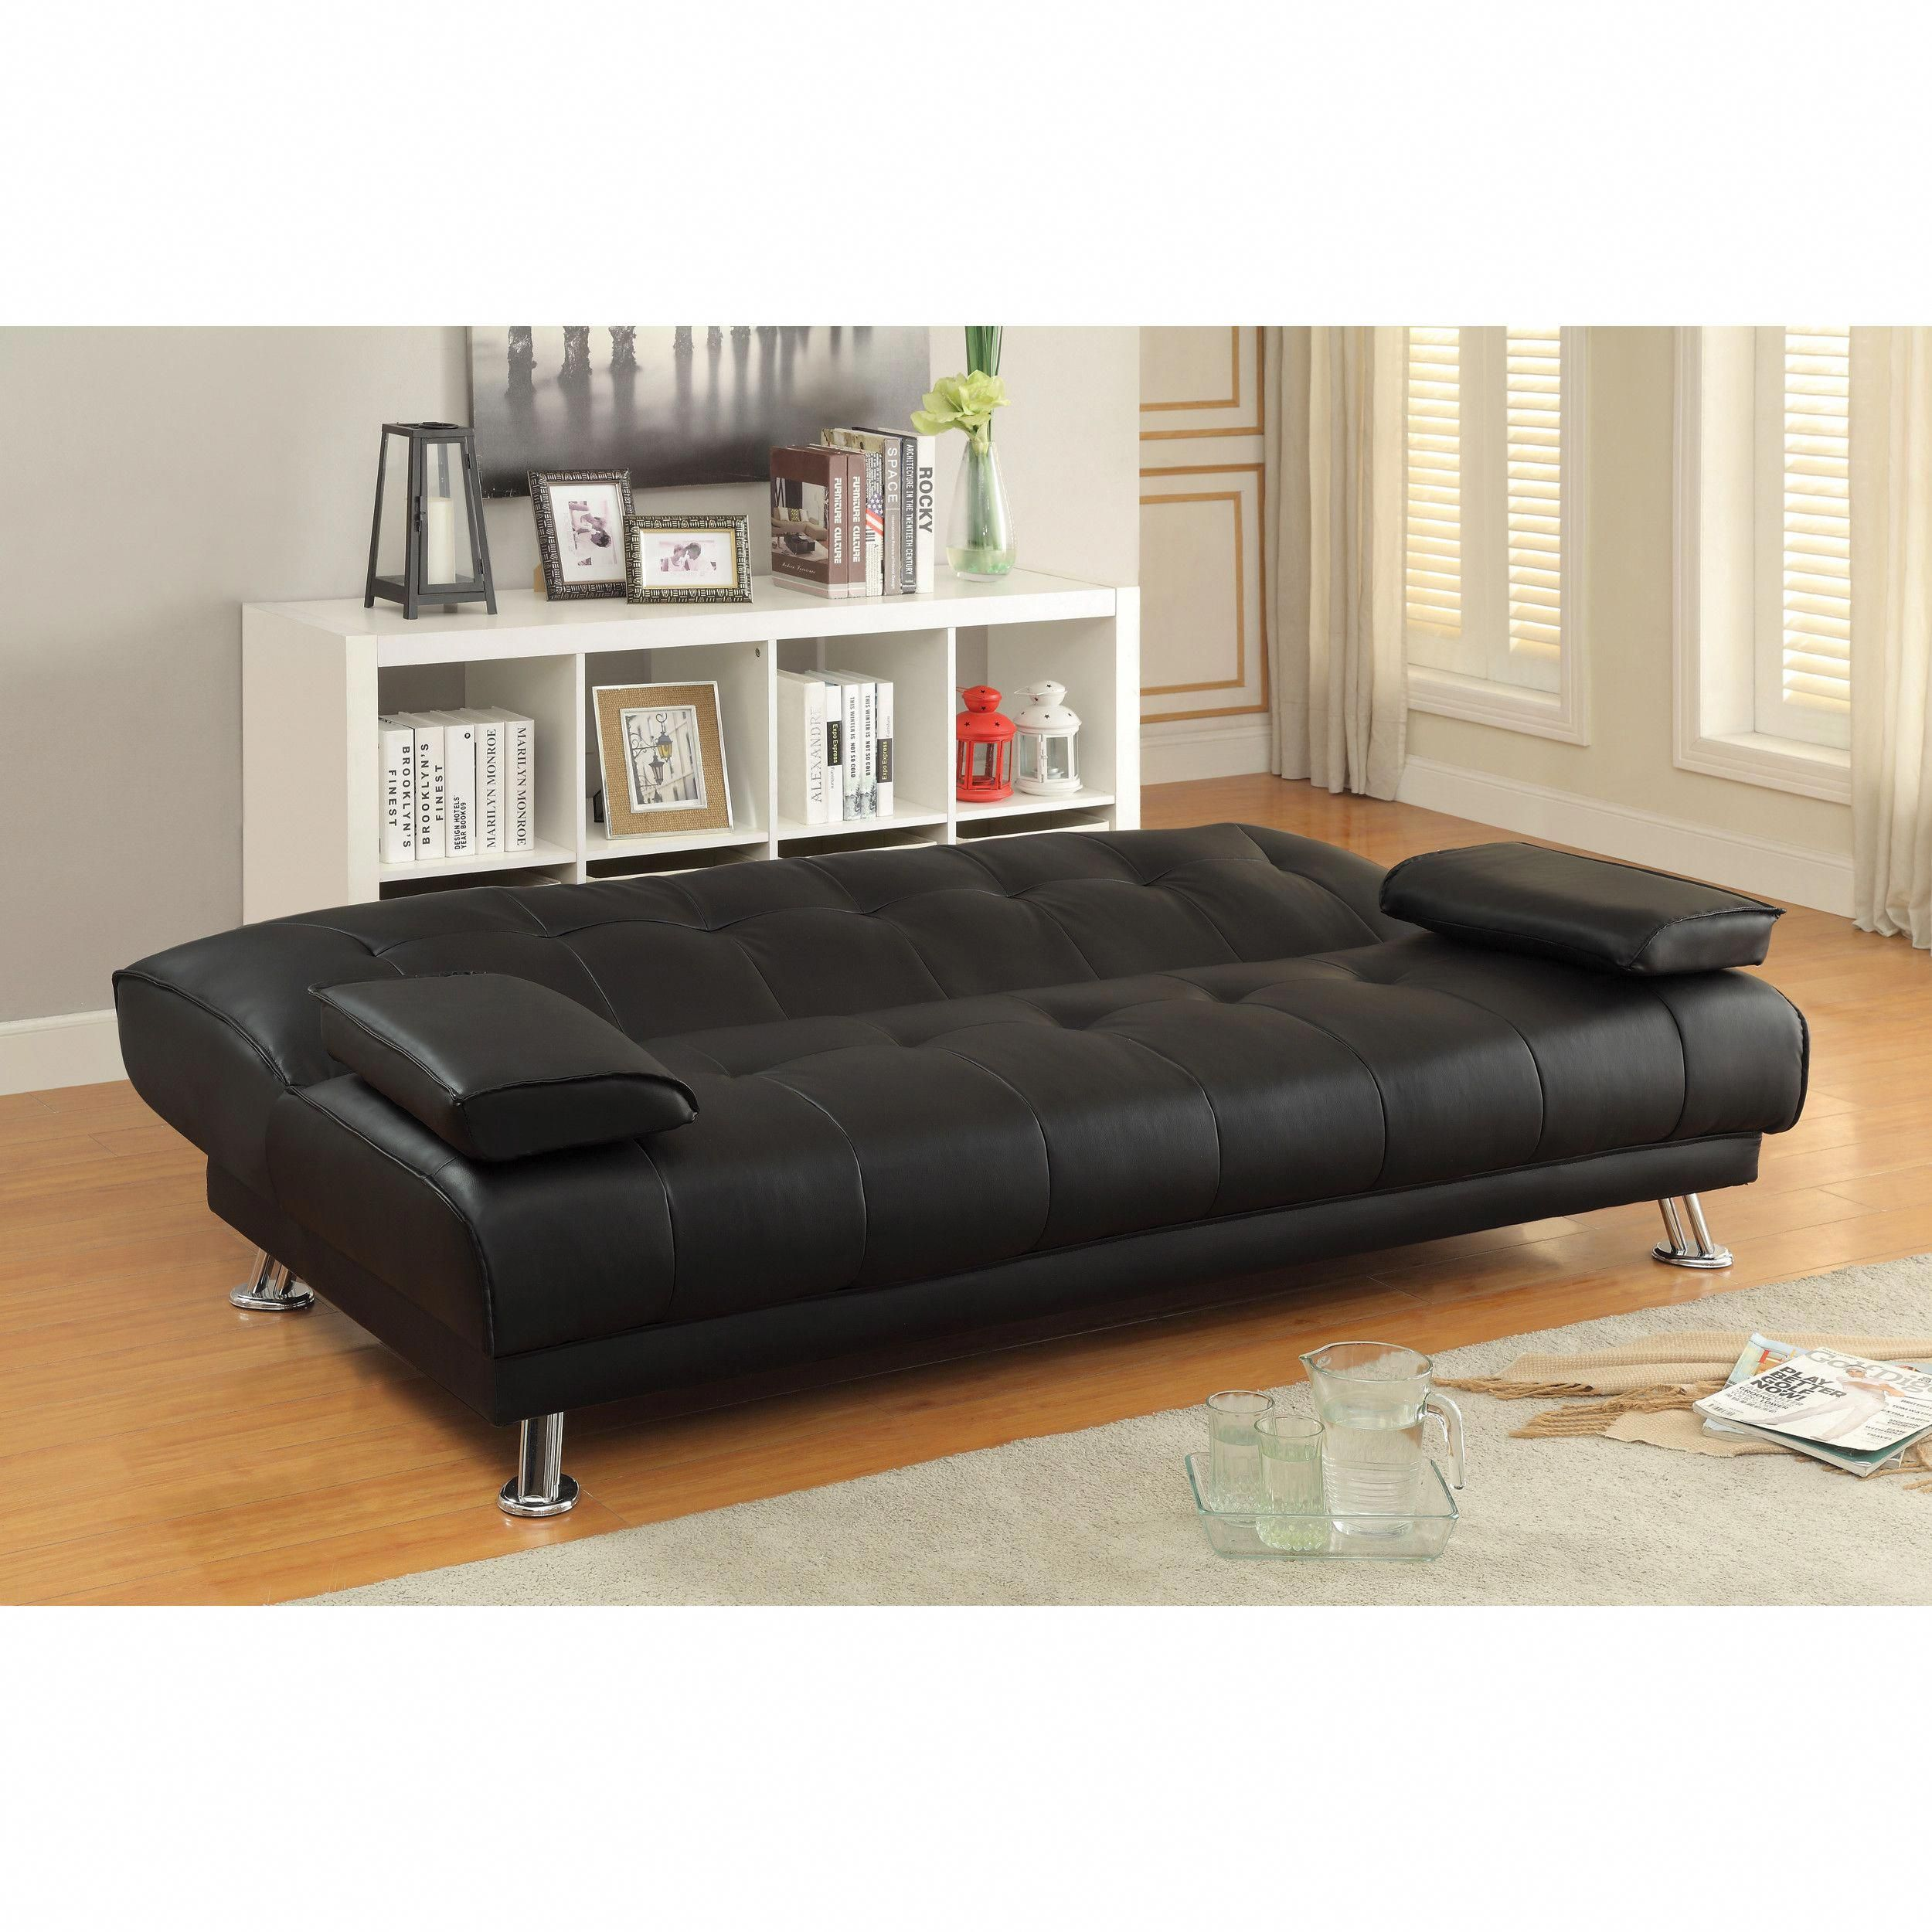 2018 Best Black Leather Sofa Beds Luxury Elegance And Comfort